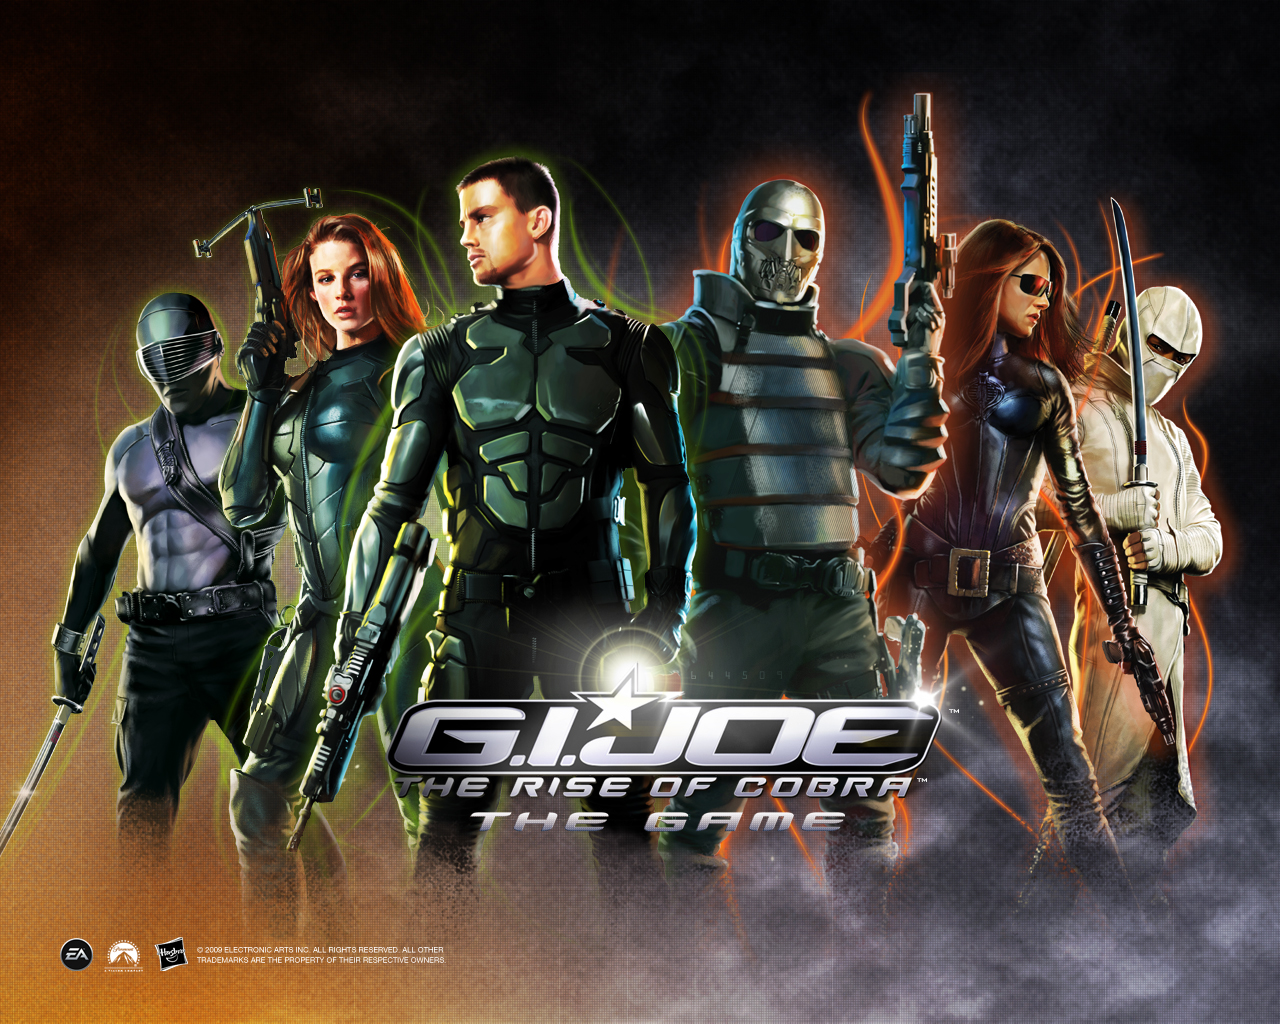 Real Fun Of Download Download Movies Songs Images And Many More Download G I Joe The Rise Of Cobra 2009